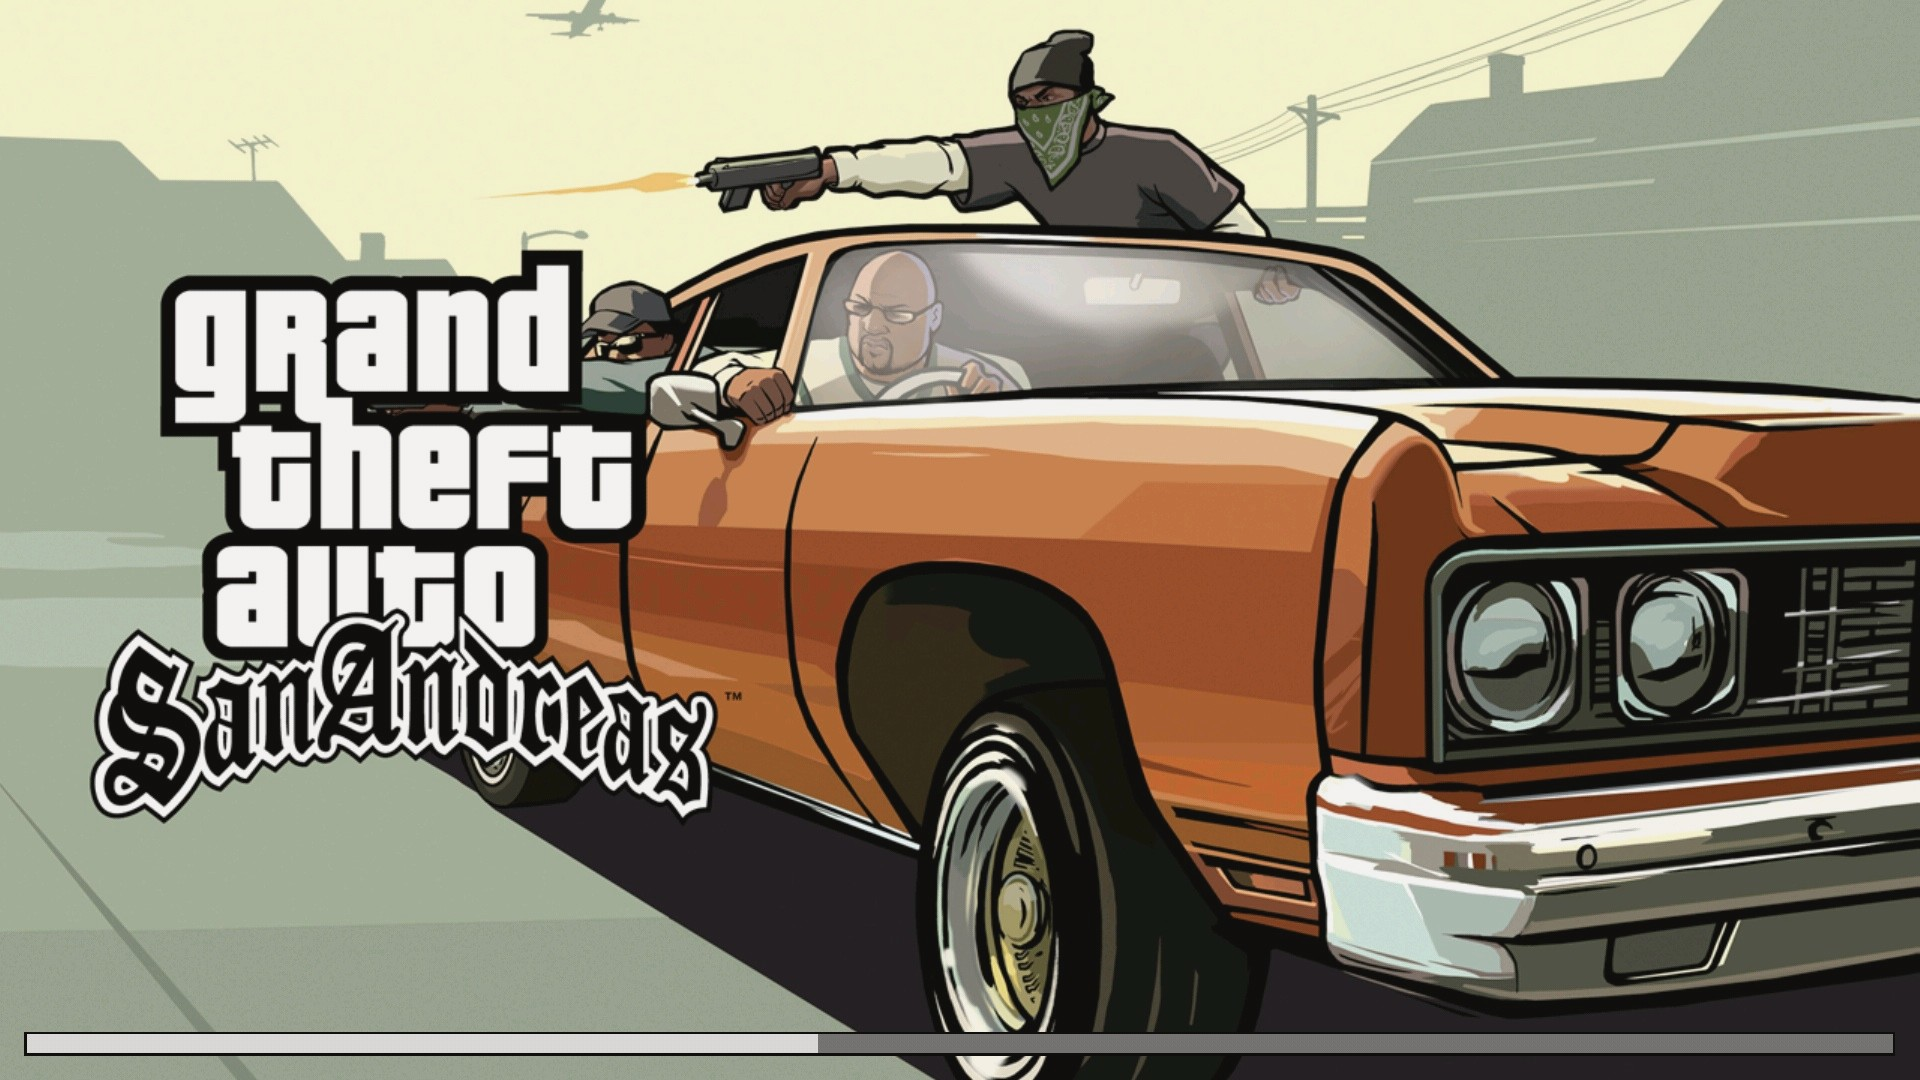 Free Download Grand Theft Auto San Andreas Wallpapers Hd Download